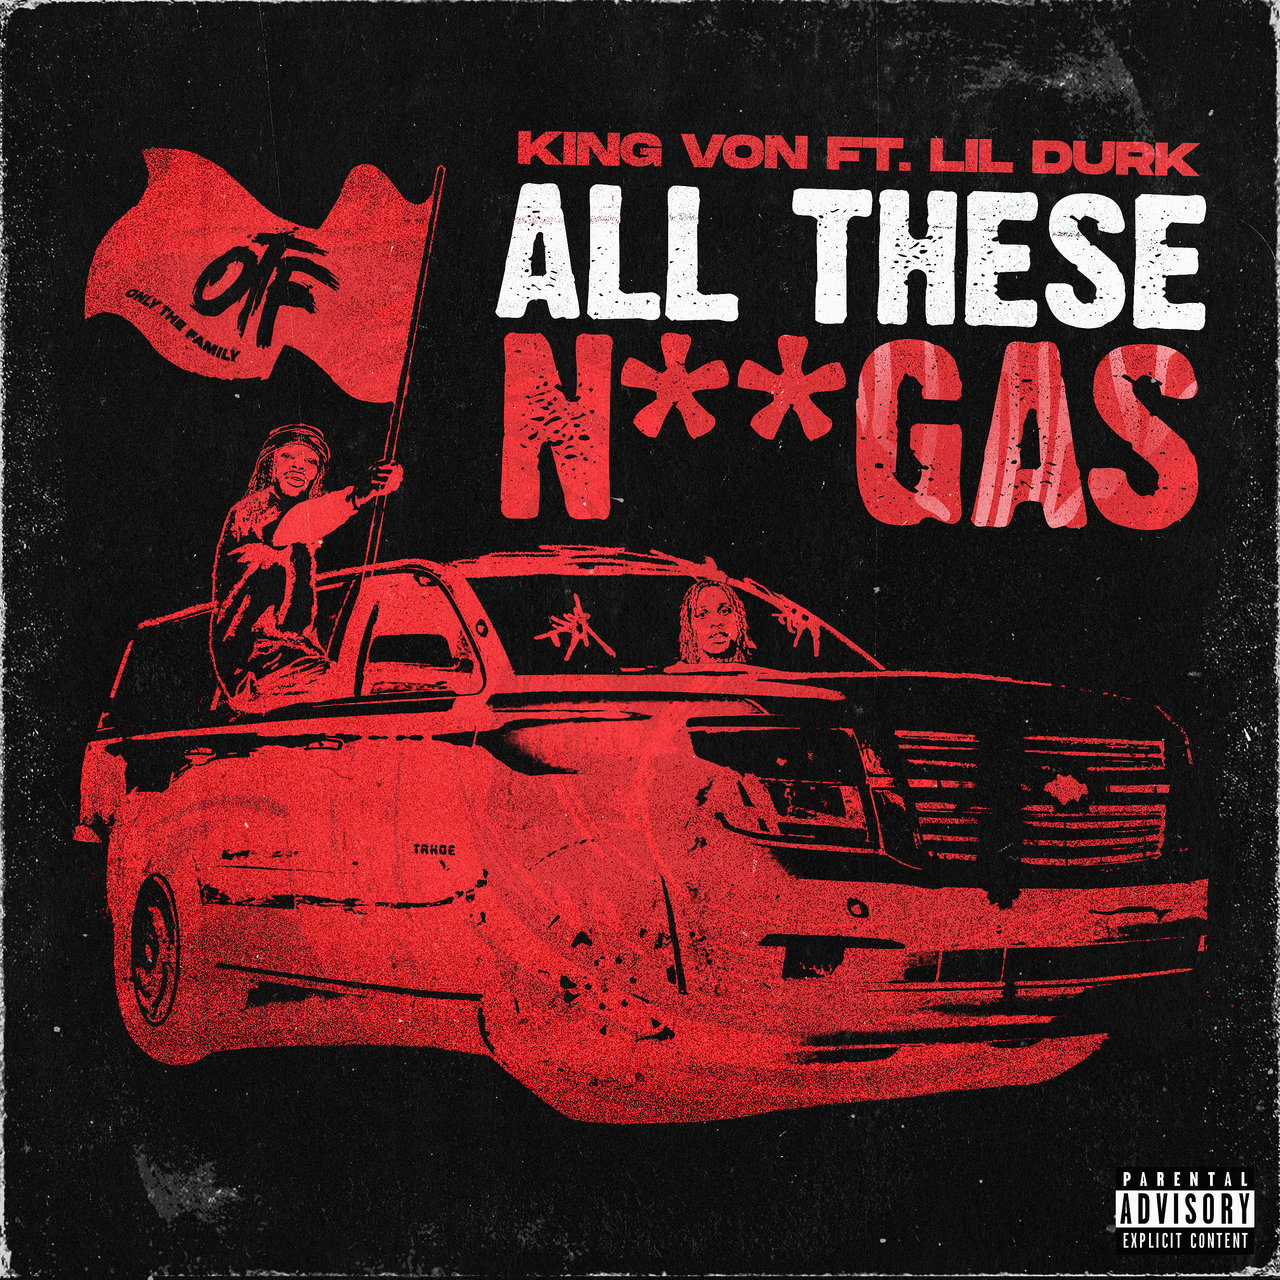 King Von - All These Niggas (ft. Lil Durk) (Cover)